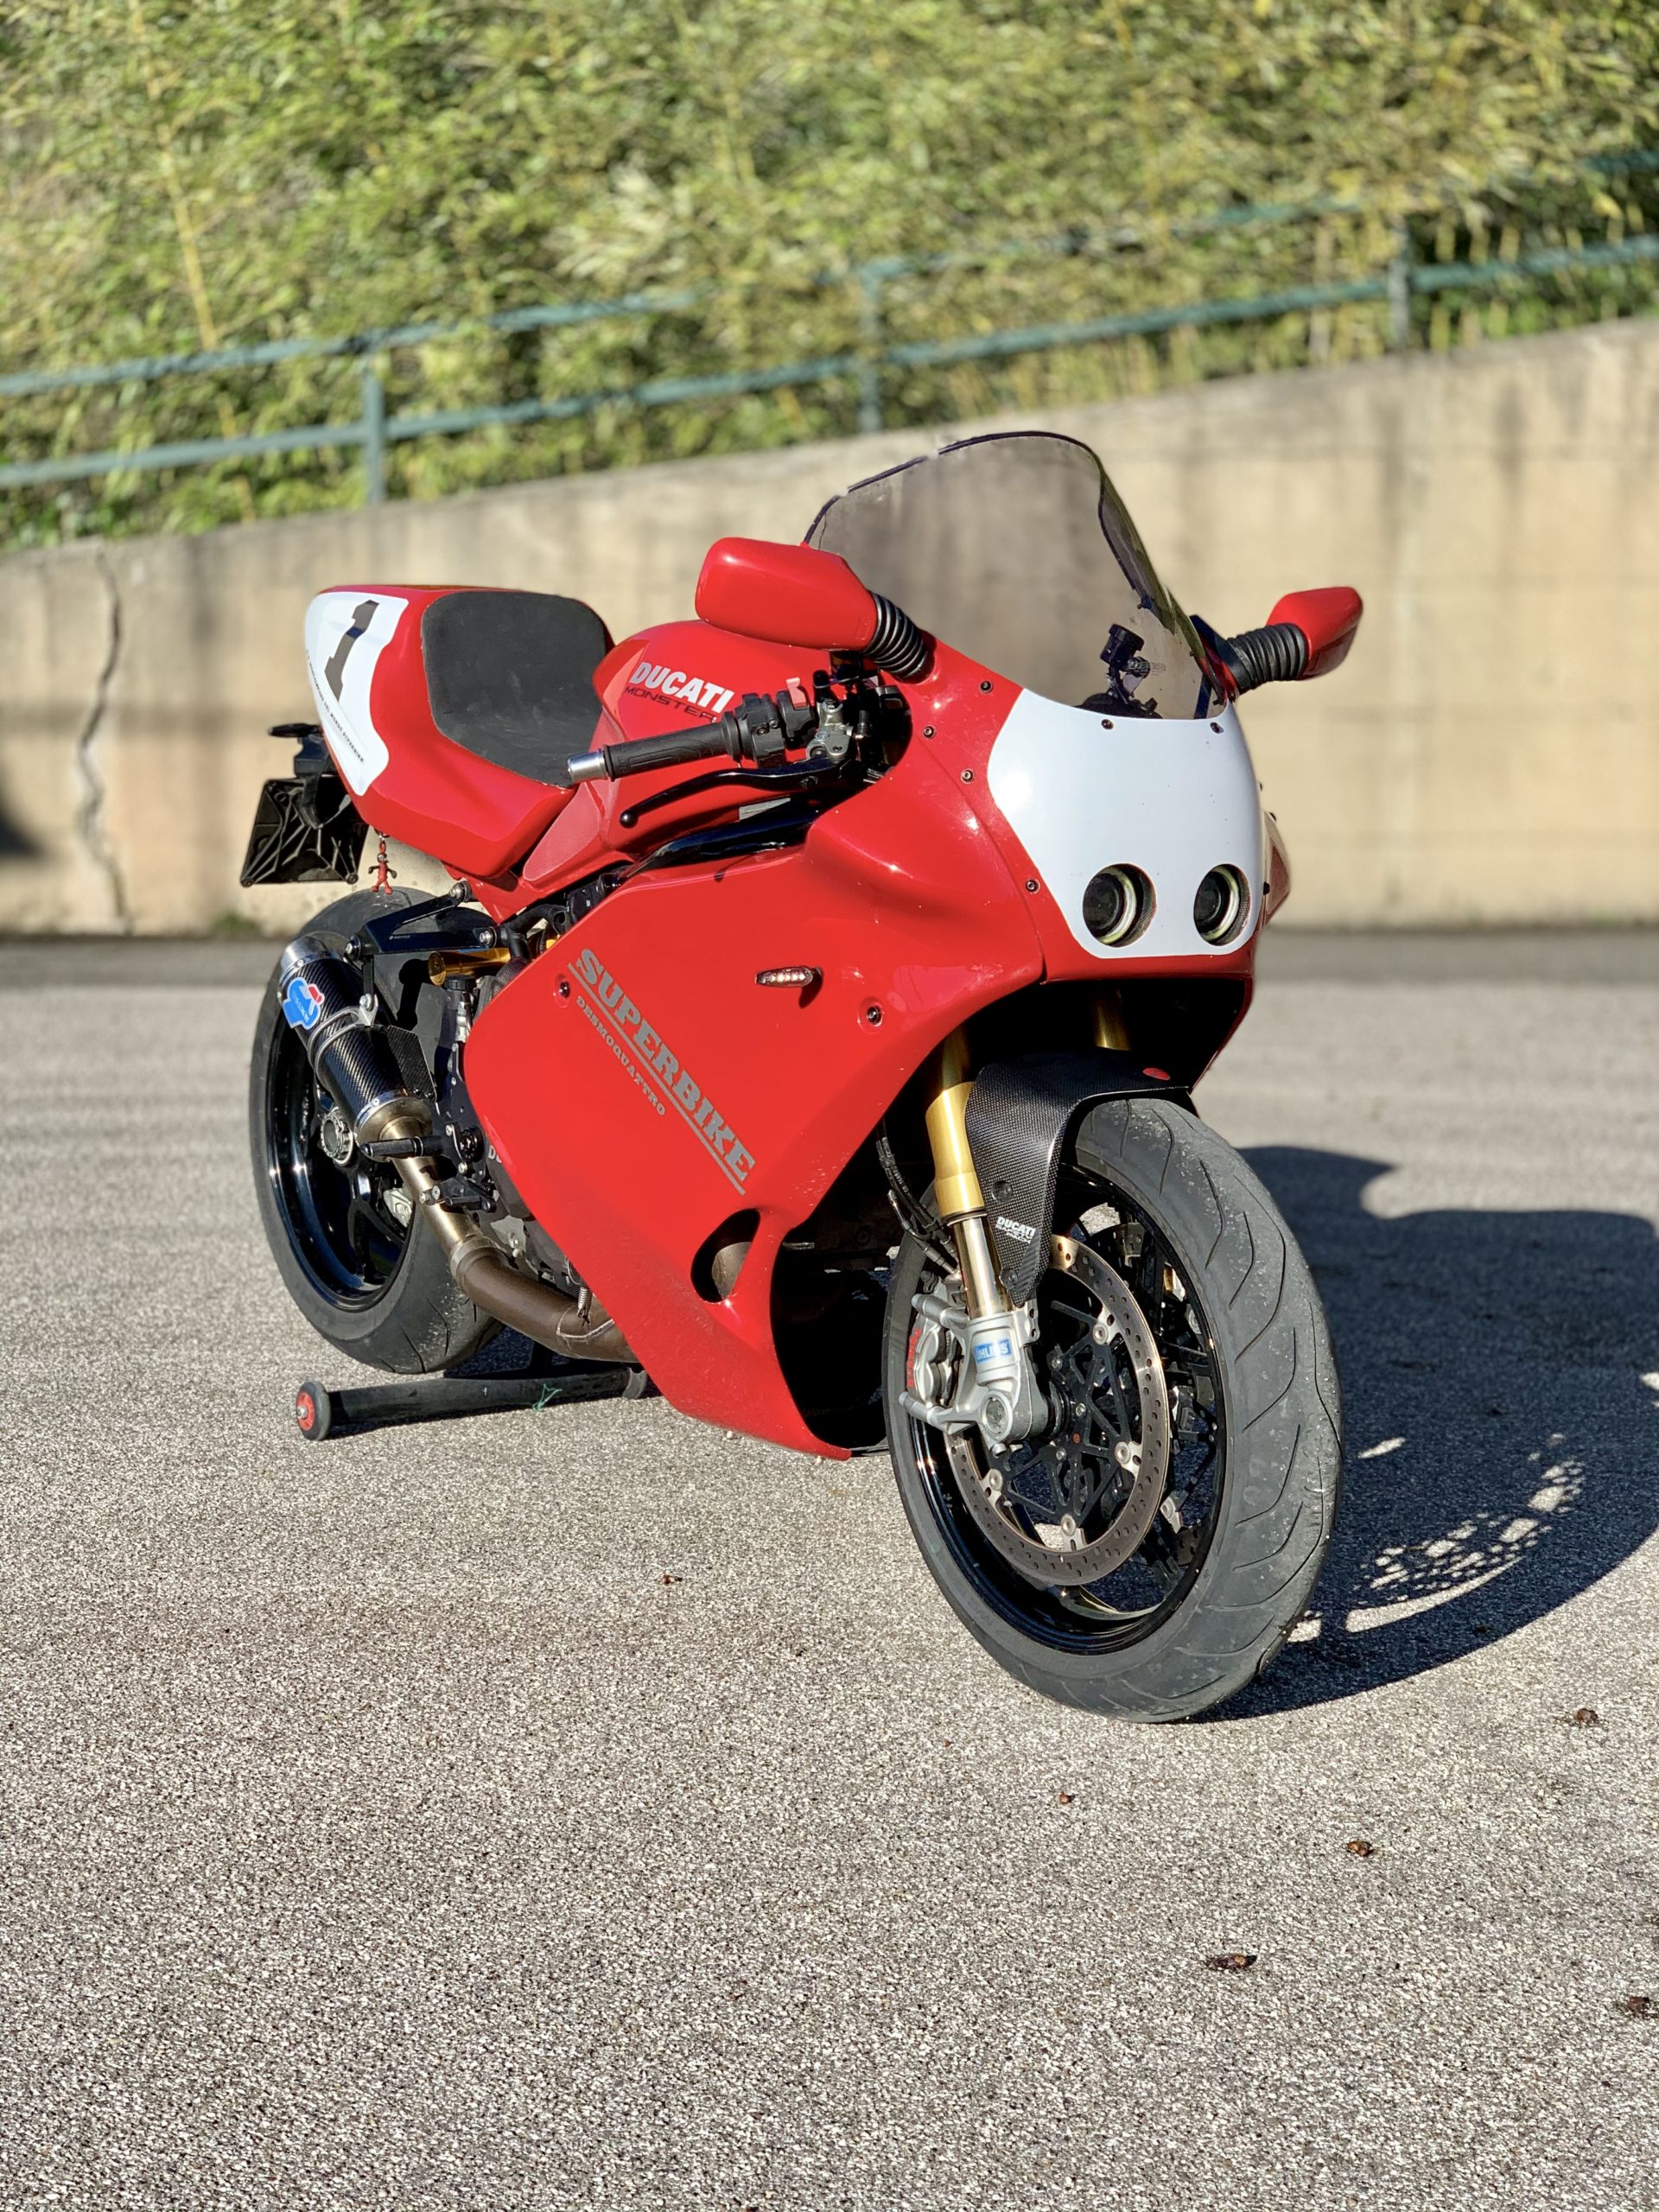 Custom Ducati Monster mixed with Ducati 888